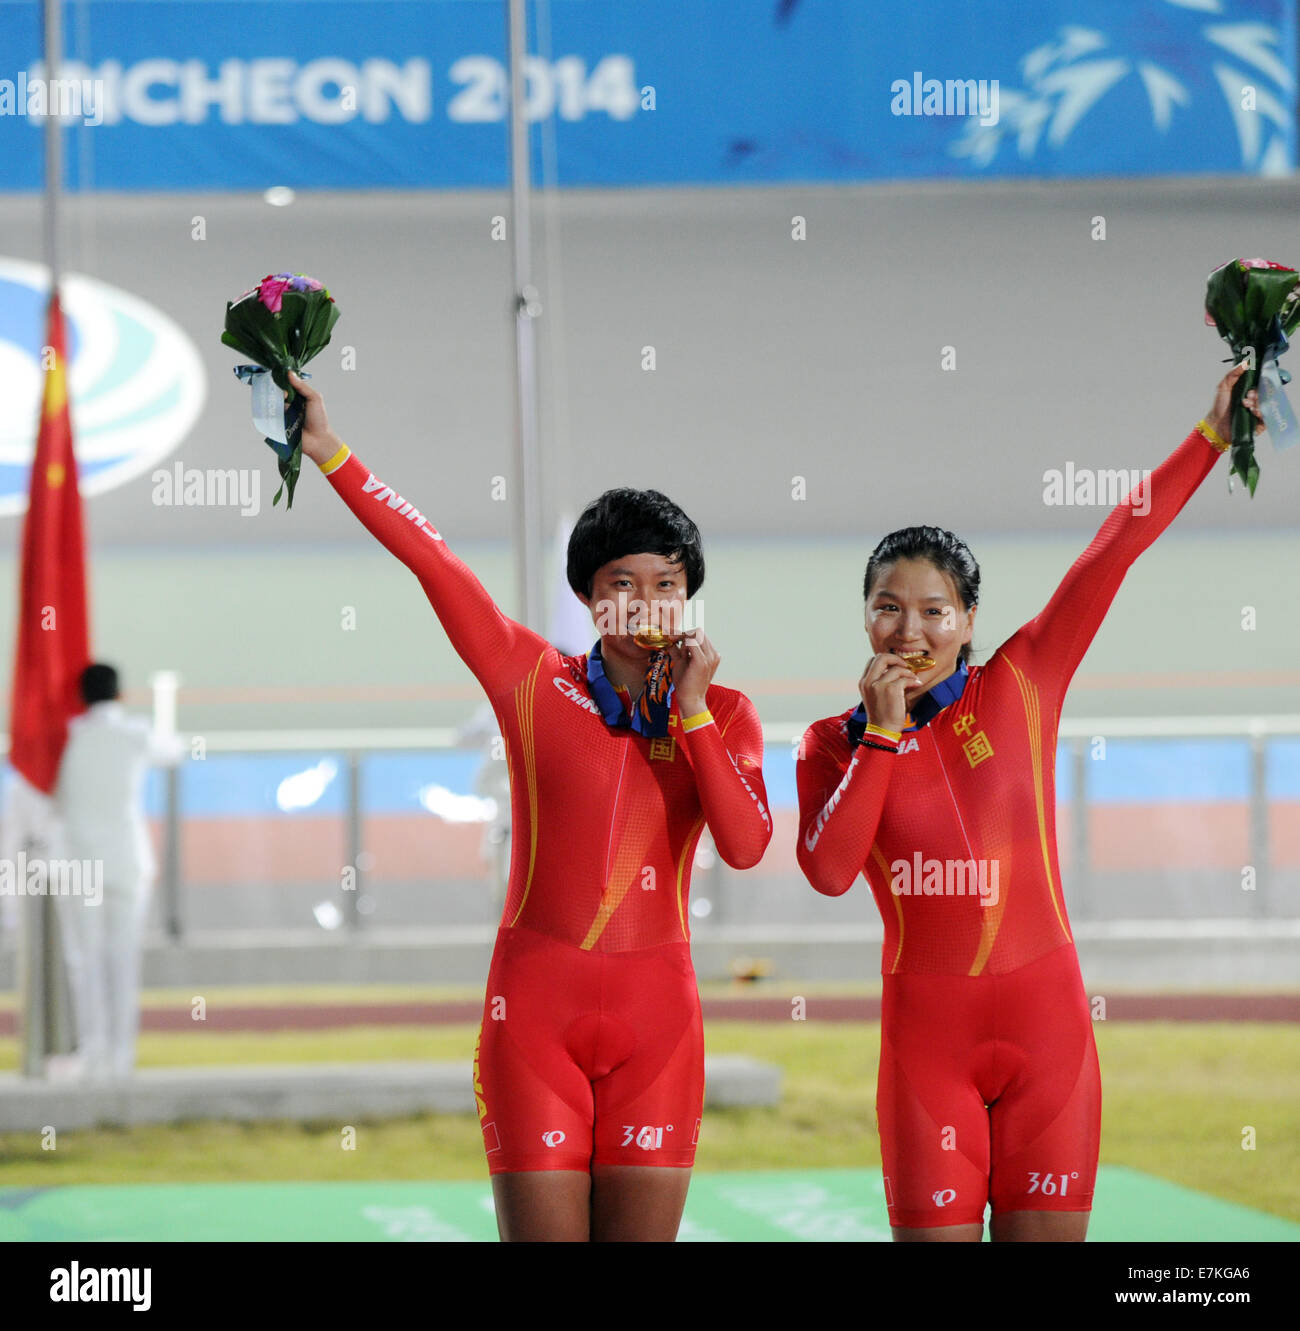 Incheon, South Korea. 20th Sep, 2014. Zhong Tianshi (L) and Gong Jinjie of  China pose on the podium during the awarding ceremony of Women's Team  Sprint competition of cycling track at the